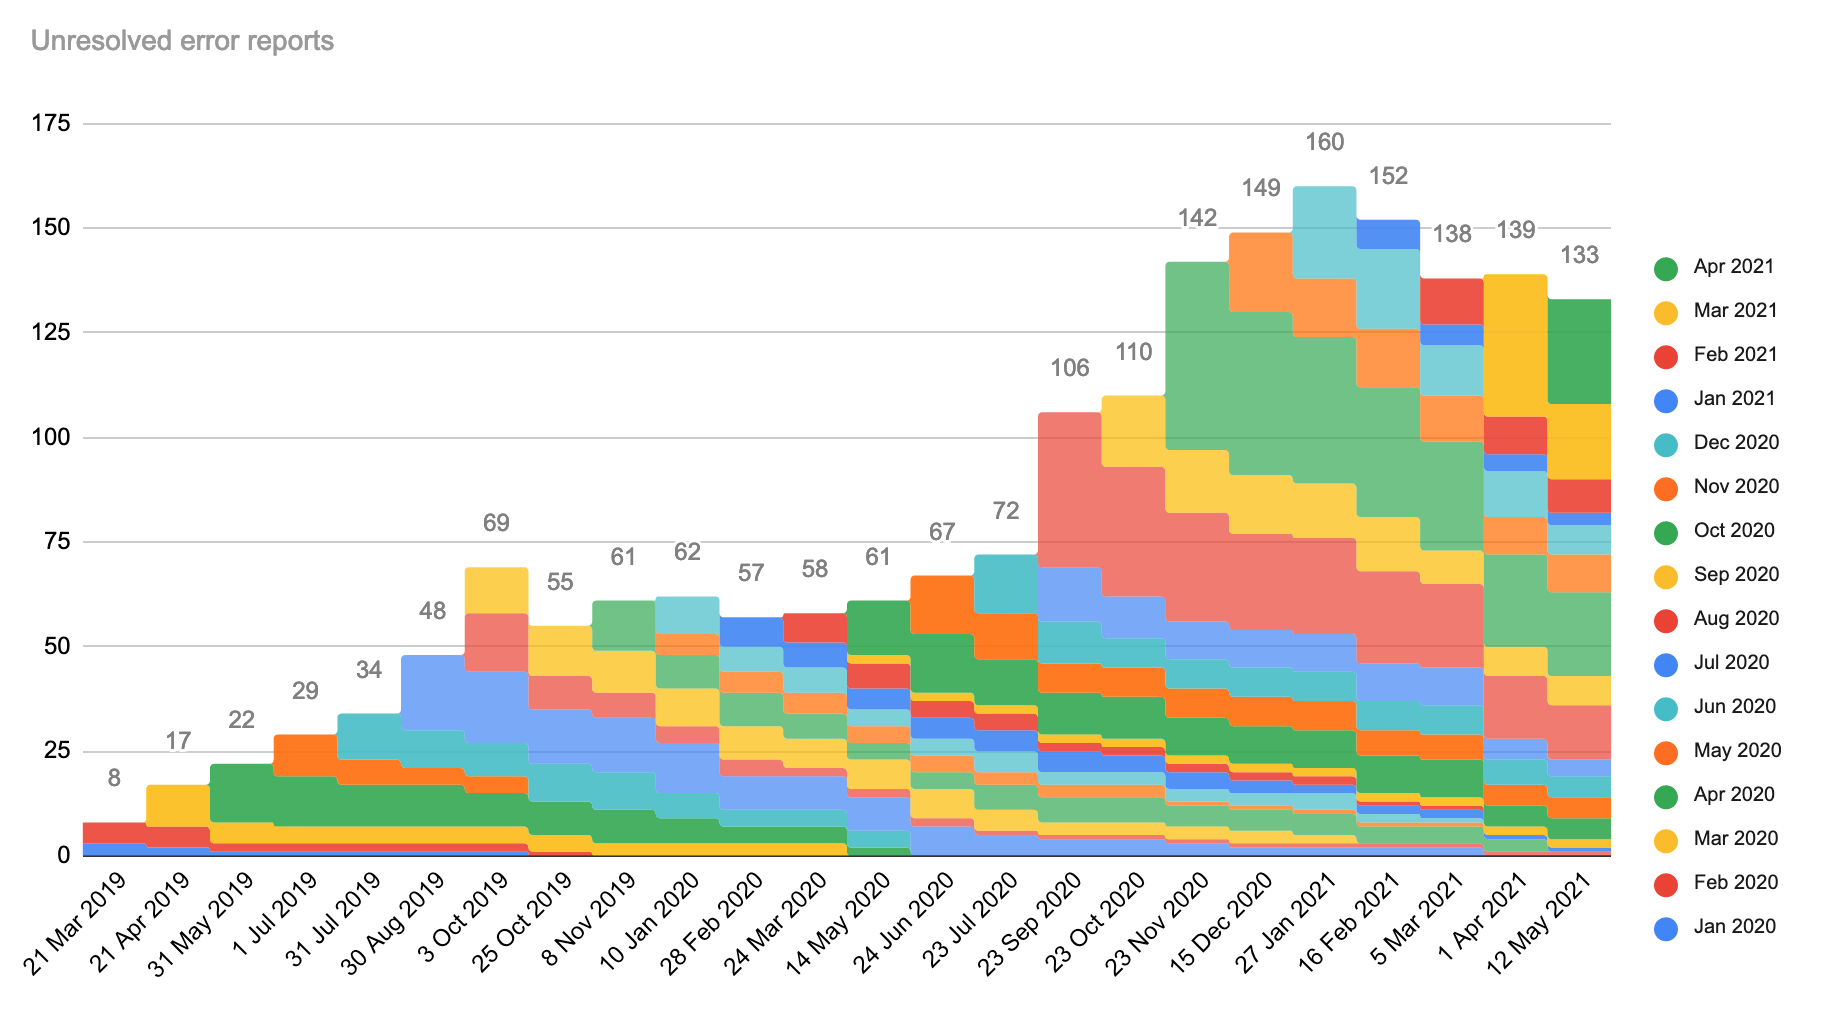 Unresolved error reports, stacked by month.